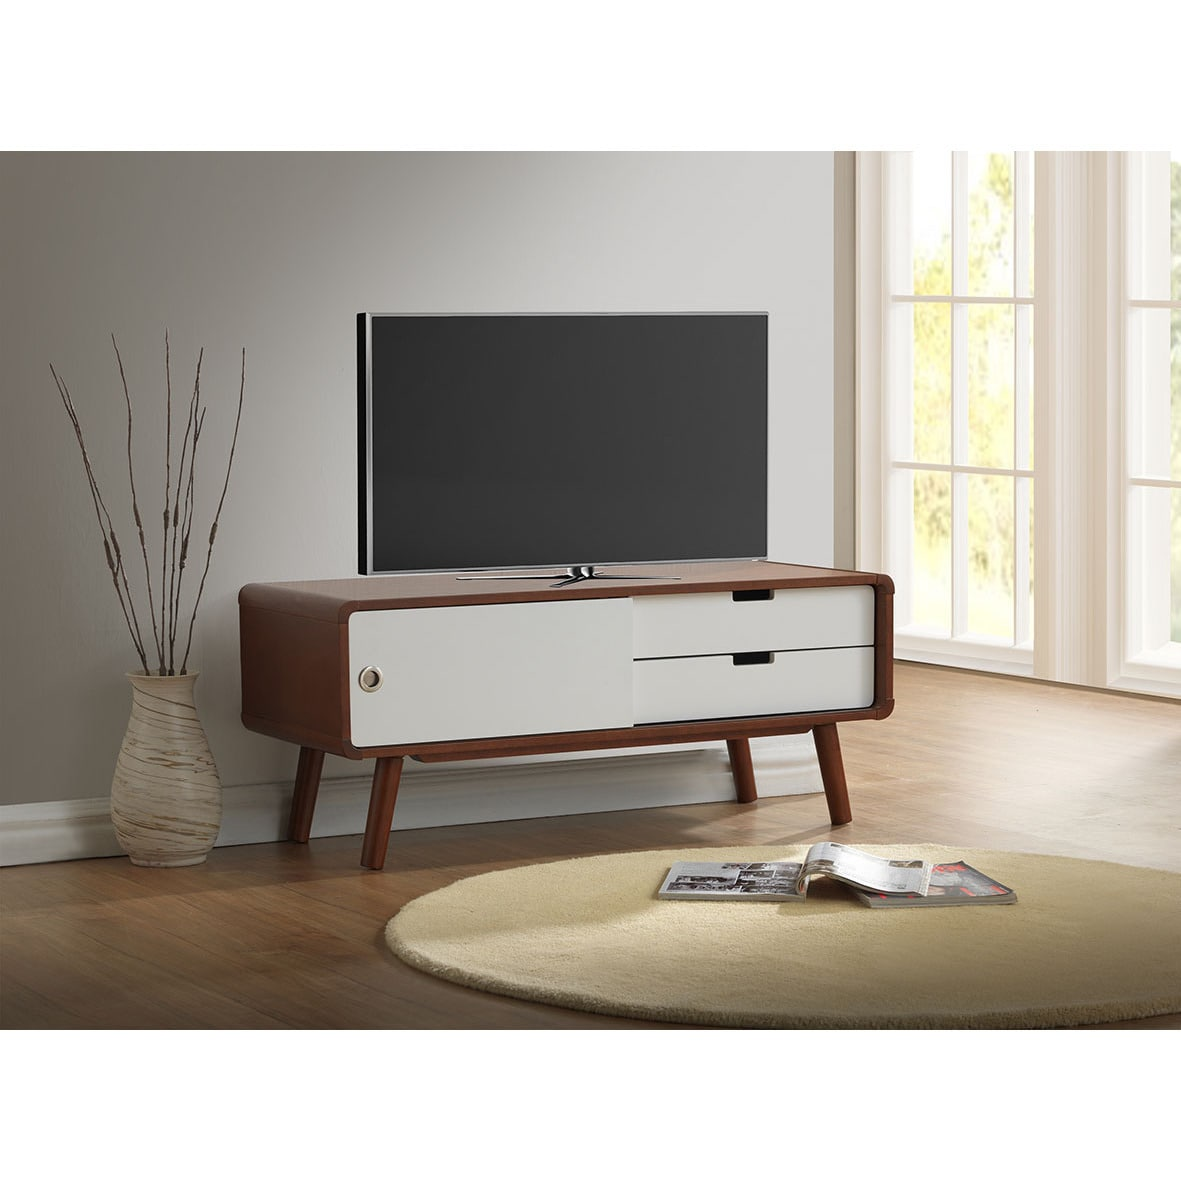 Baxton Studio Armani Mid Century Dark Walnut And White Tv Stand Free Shipping Today 10655450